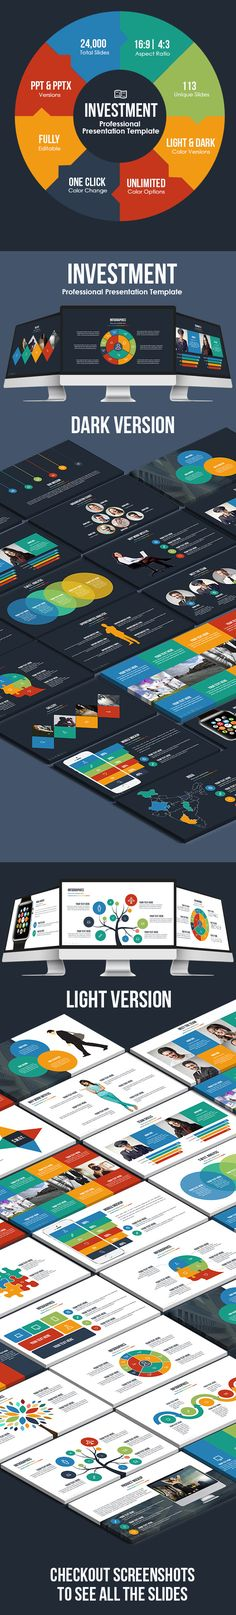 Galaxy keynote presentation template download here http galaxy keynote presentation template download here httpgraphicriveritemgalaxy keynote presentation15997838refksioks keynote templates toneelgroepblik